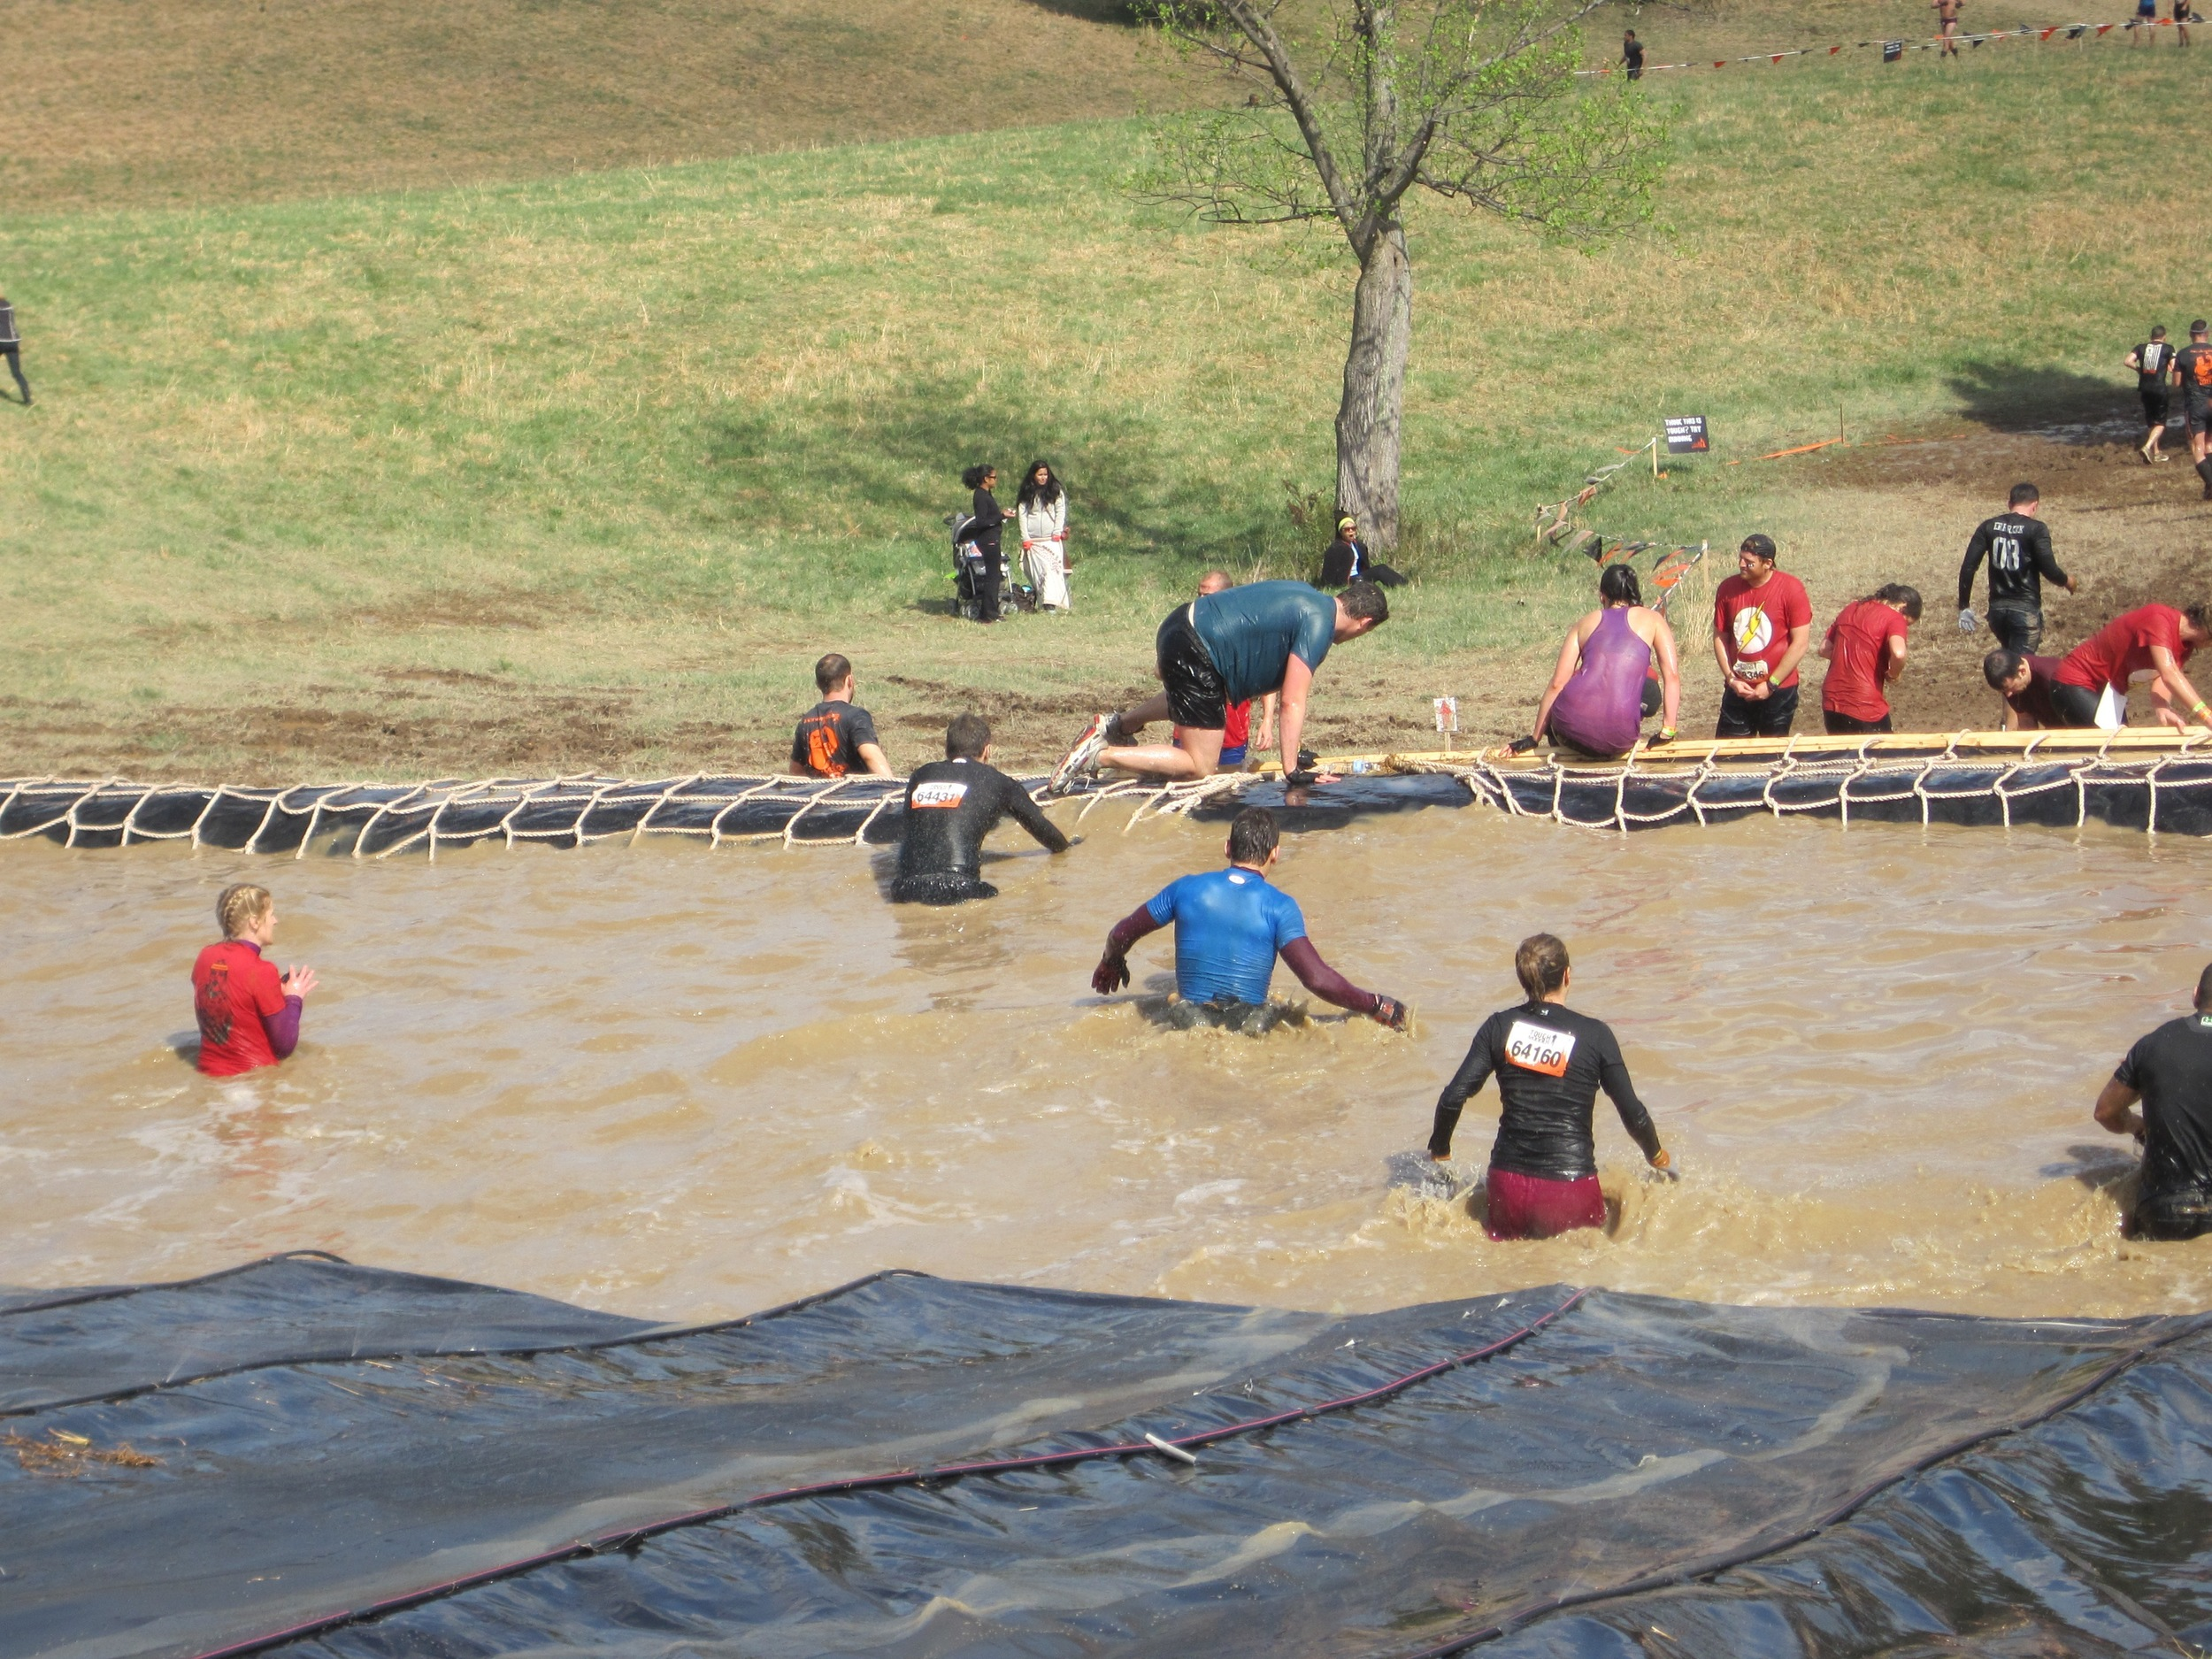 ...at least until you get to the bottom, when you're wading through more cold, muddy water. This was the fourth consecutive water obstacle in the final quarter of the race.